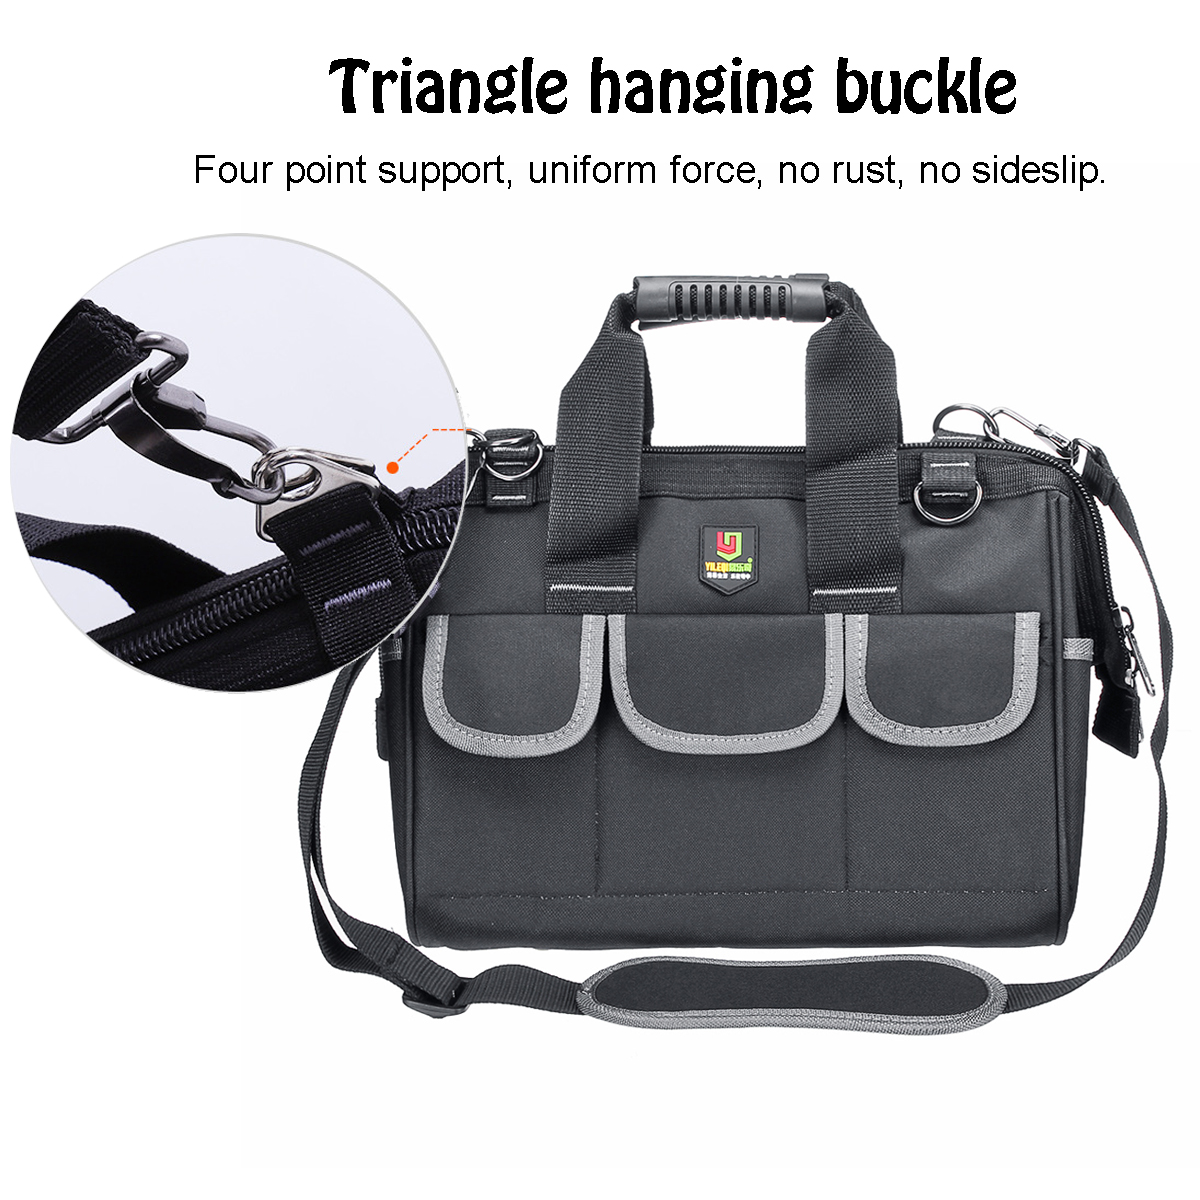 12-19/'/' Portable Tool Bags Heavy Duty Oxford Cloth Hardware Pouch Toolbags Black